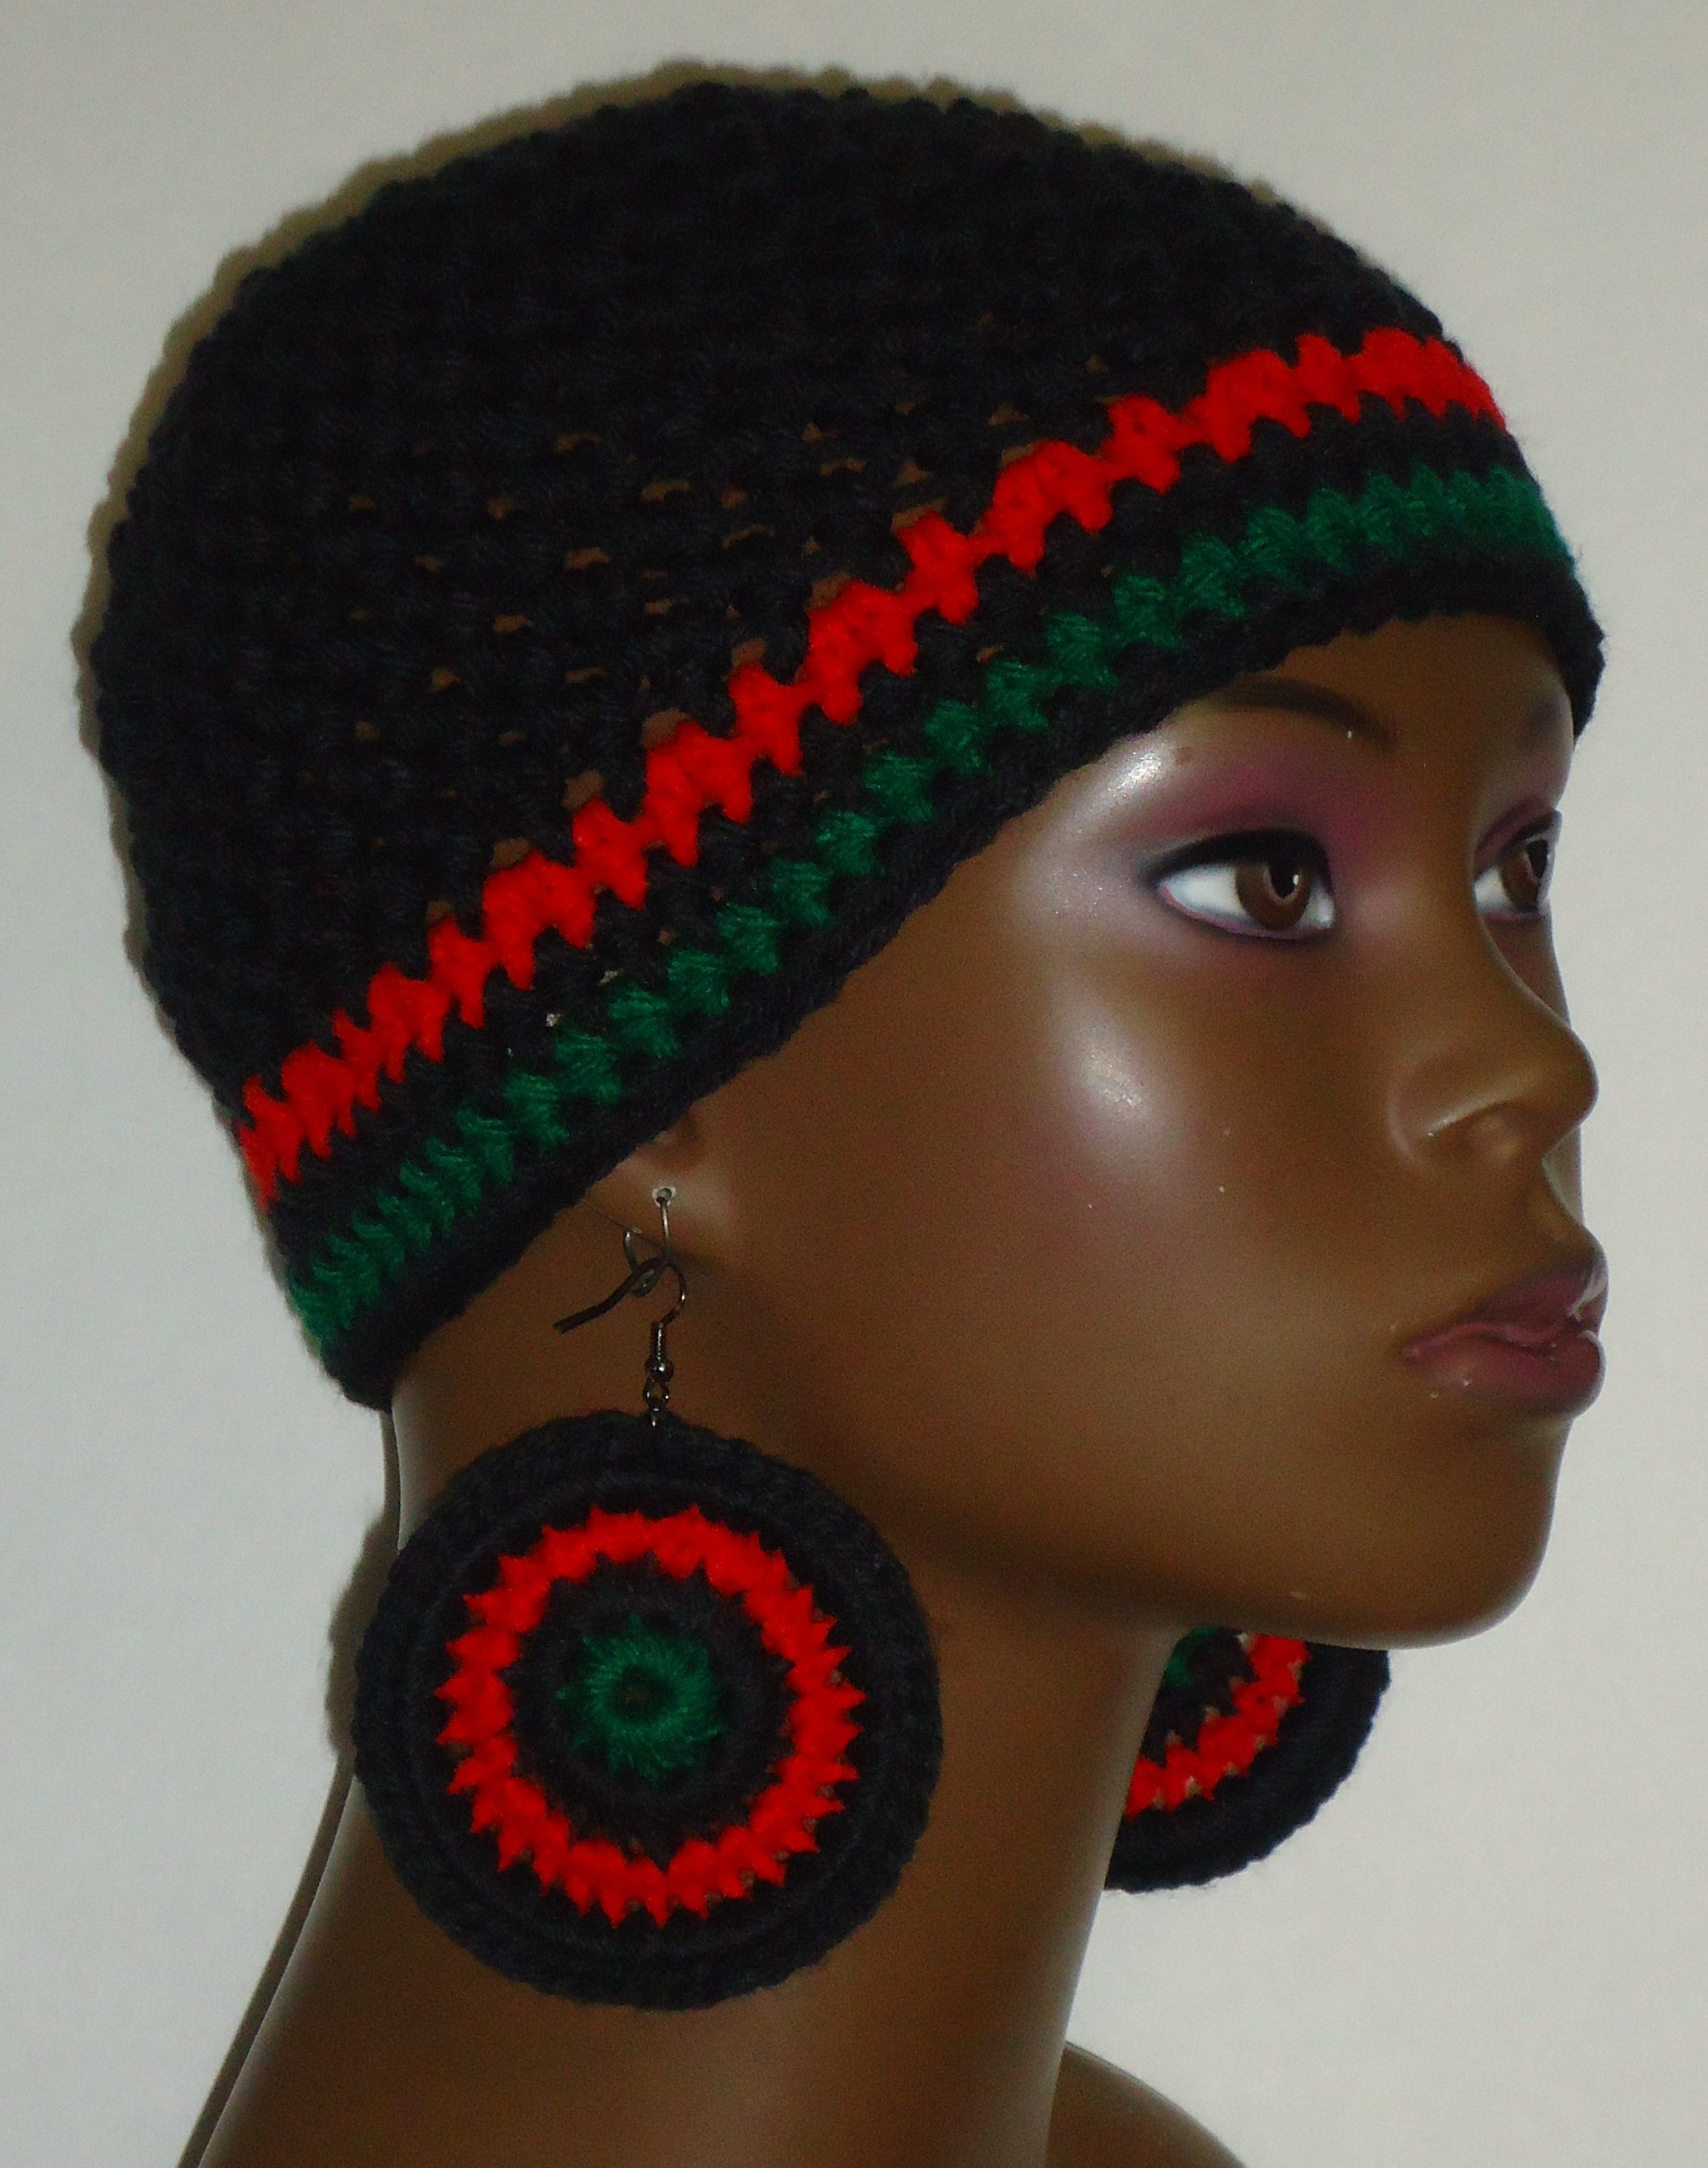 Pan-African Trim Crochet skull cap beanie and earrings by Razonda Lee Red  Black Green e51529e5ece